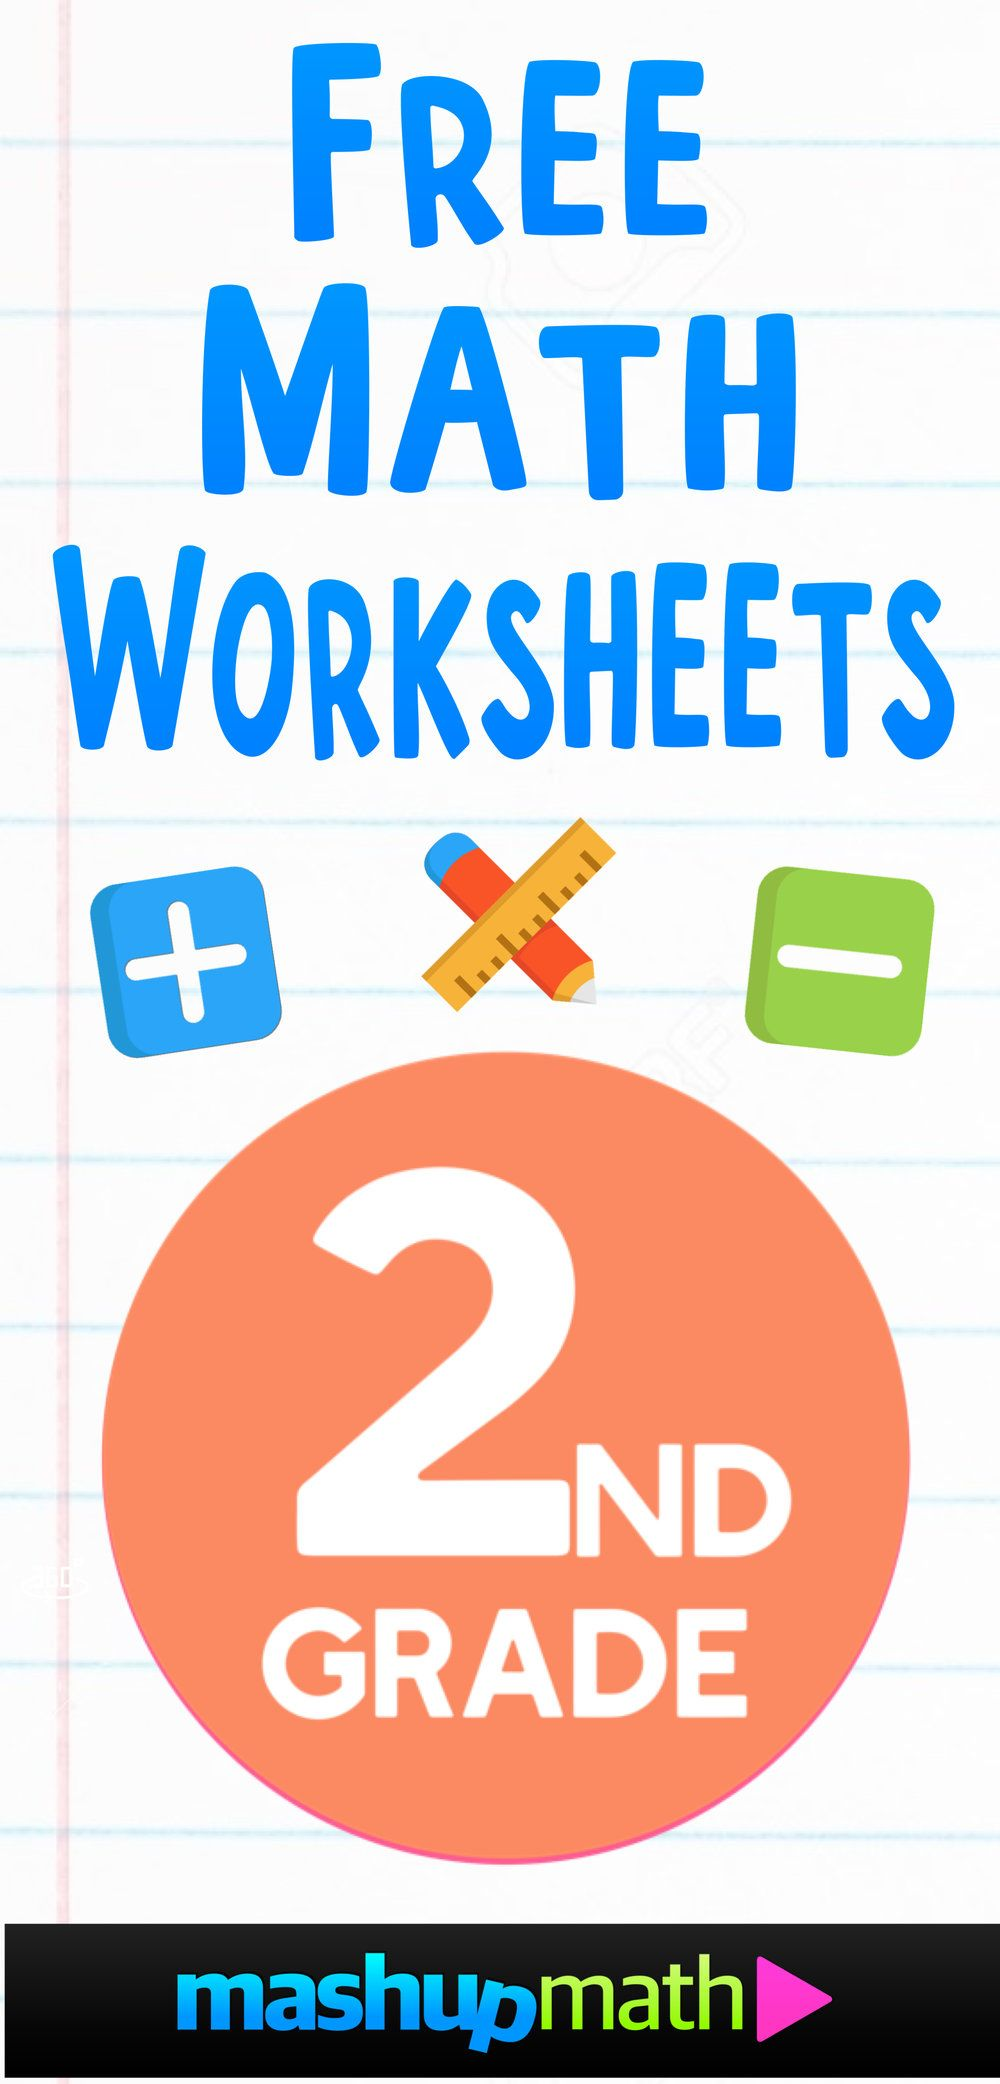 Are You Looking For Free Printable Math Worksheets For Second Grade Check Out This Hu 2nd Grade Math Worksheets Math Worksheets Free Printable Math Worksheets [ 2084 x 1000 Pixel ]